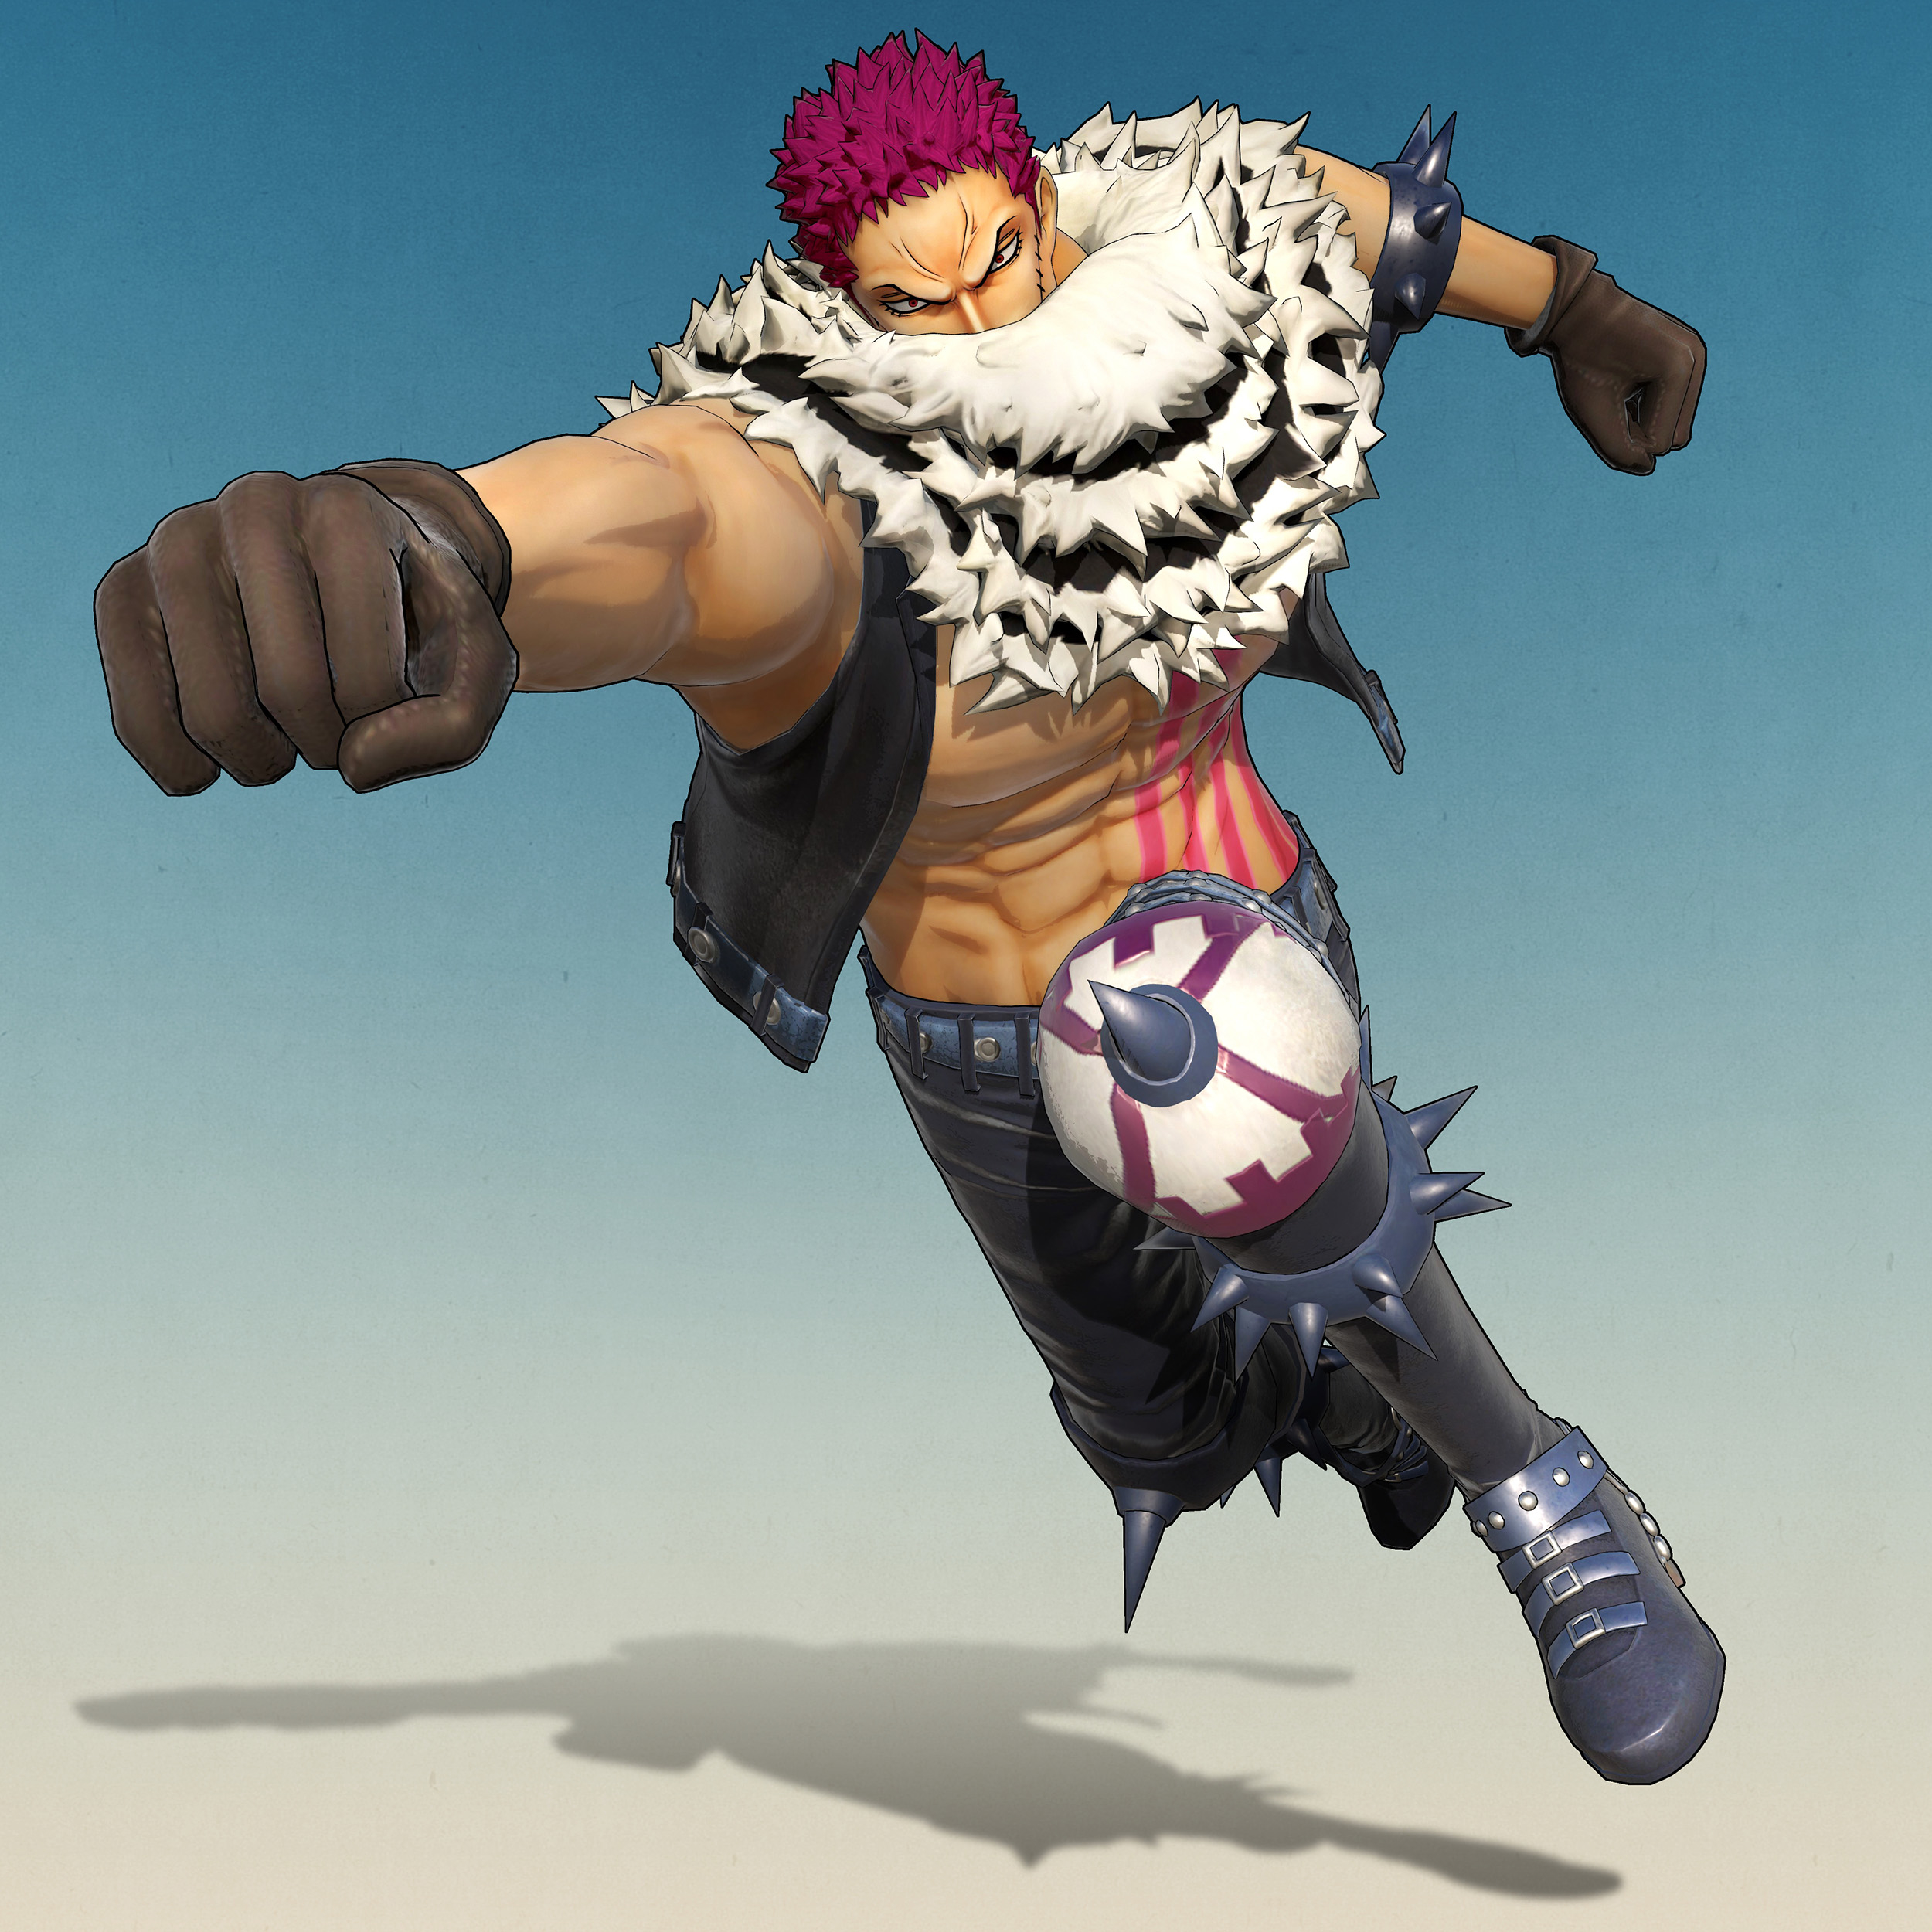 Charlotte Katakuri One Piece Game Wallpaper Hd Games 4k Wallpapers Images Photos And Background